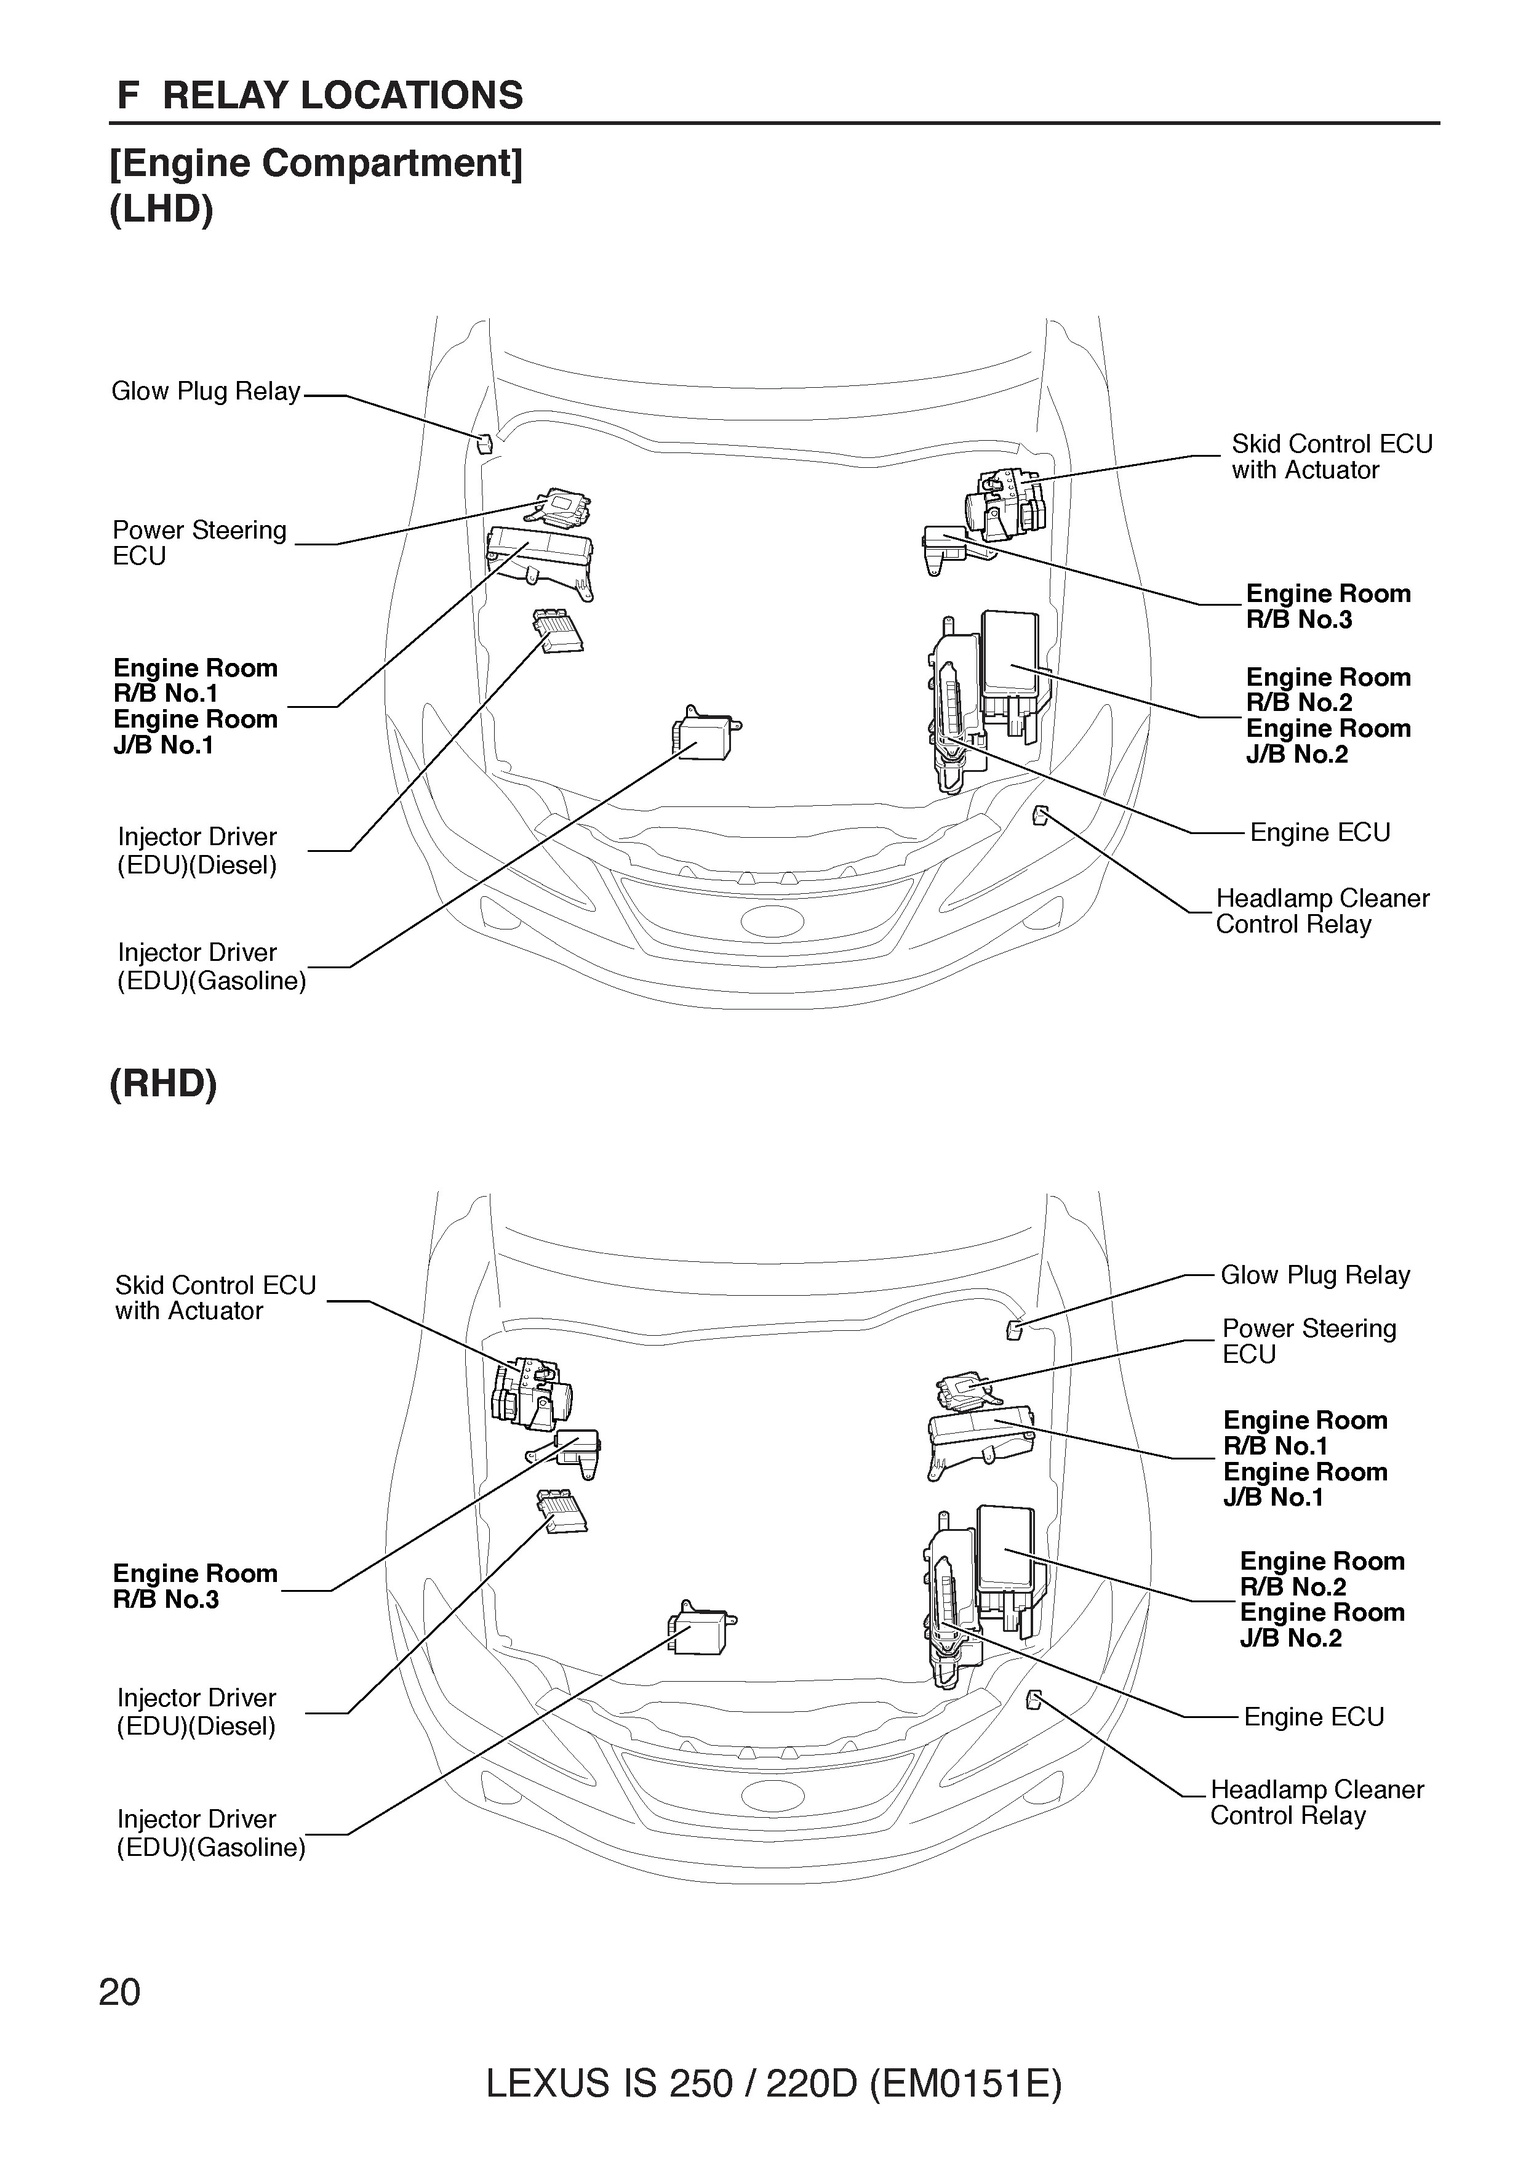 hight resolution of lexus electrical wiring diagrams wiring library catalina 22 electrical wiring diagram lexus electrical wiring diagram